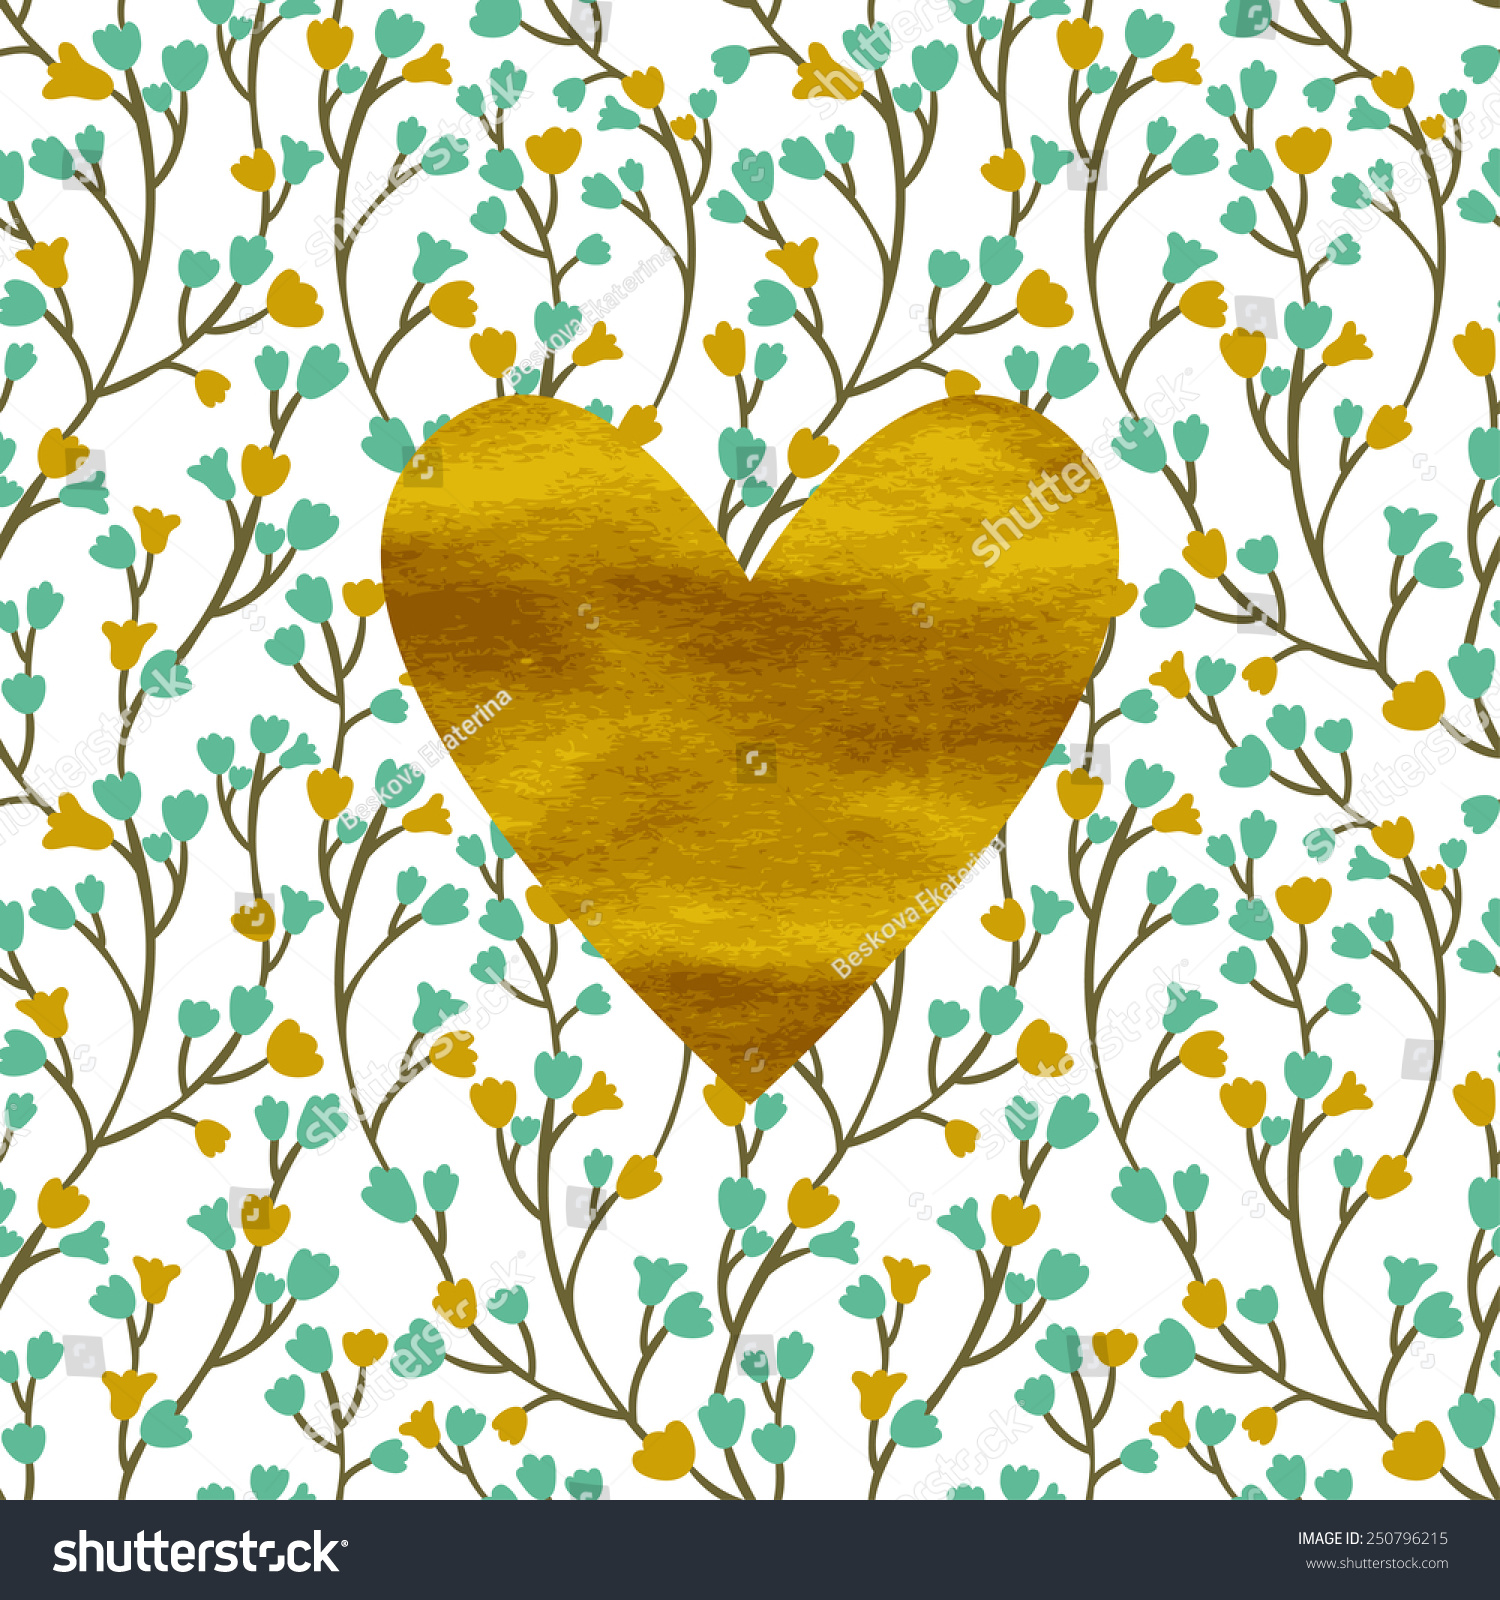 Romantic vector seamless background greeting card wallpaper vector art - Vector Card With Golden Heart And Floral Seamless Pattern Vintage Romantic Background Seamless Texture